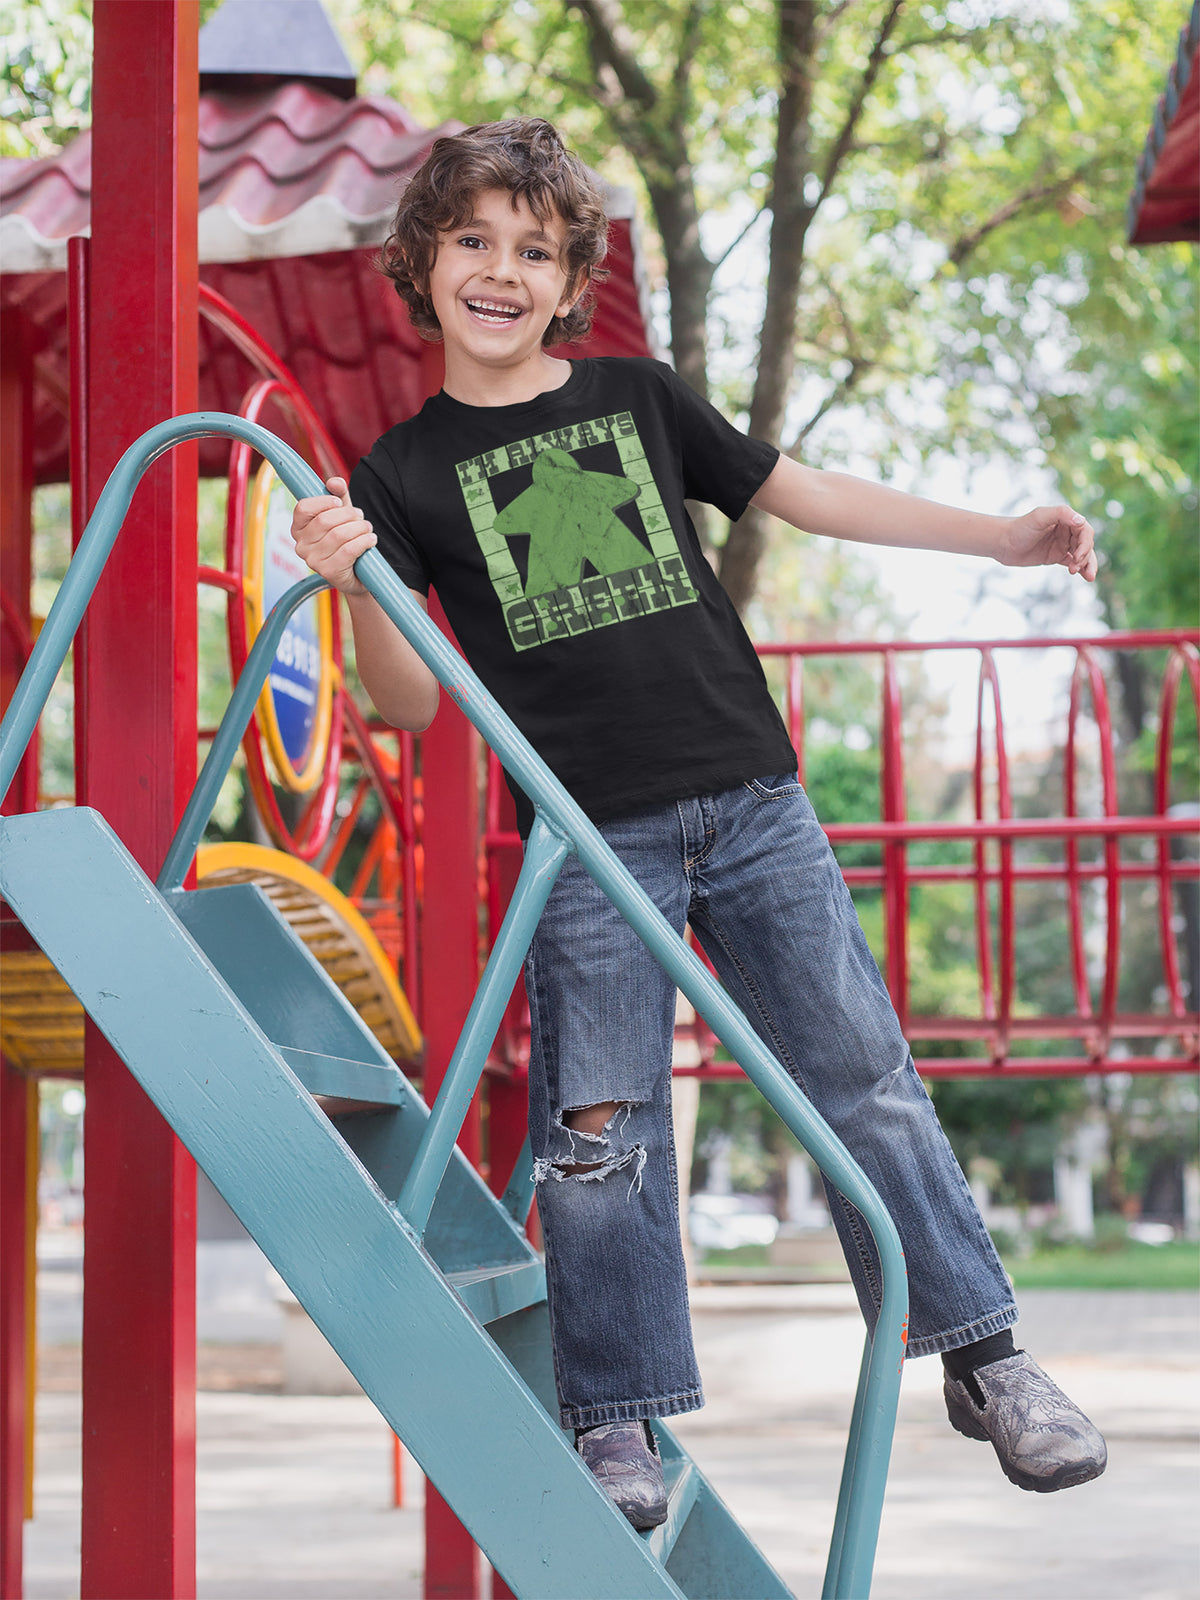 I'm Always Green Meeple Board Game T-Shirt Action Shot Boy's